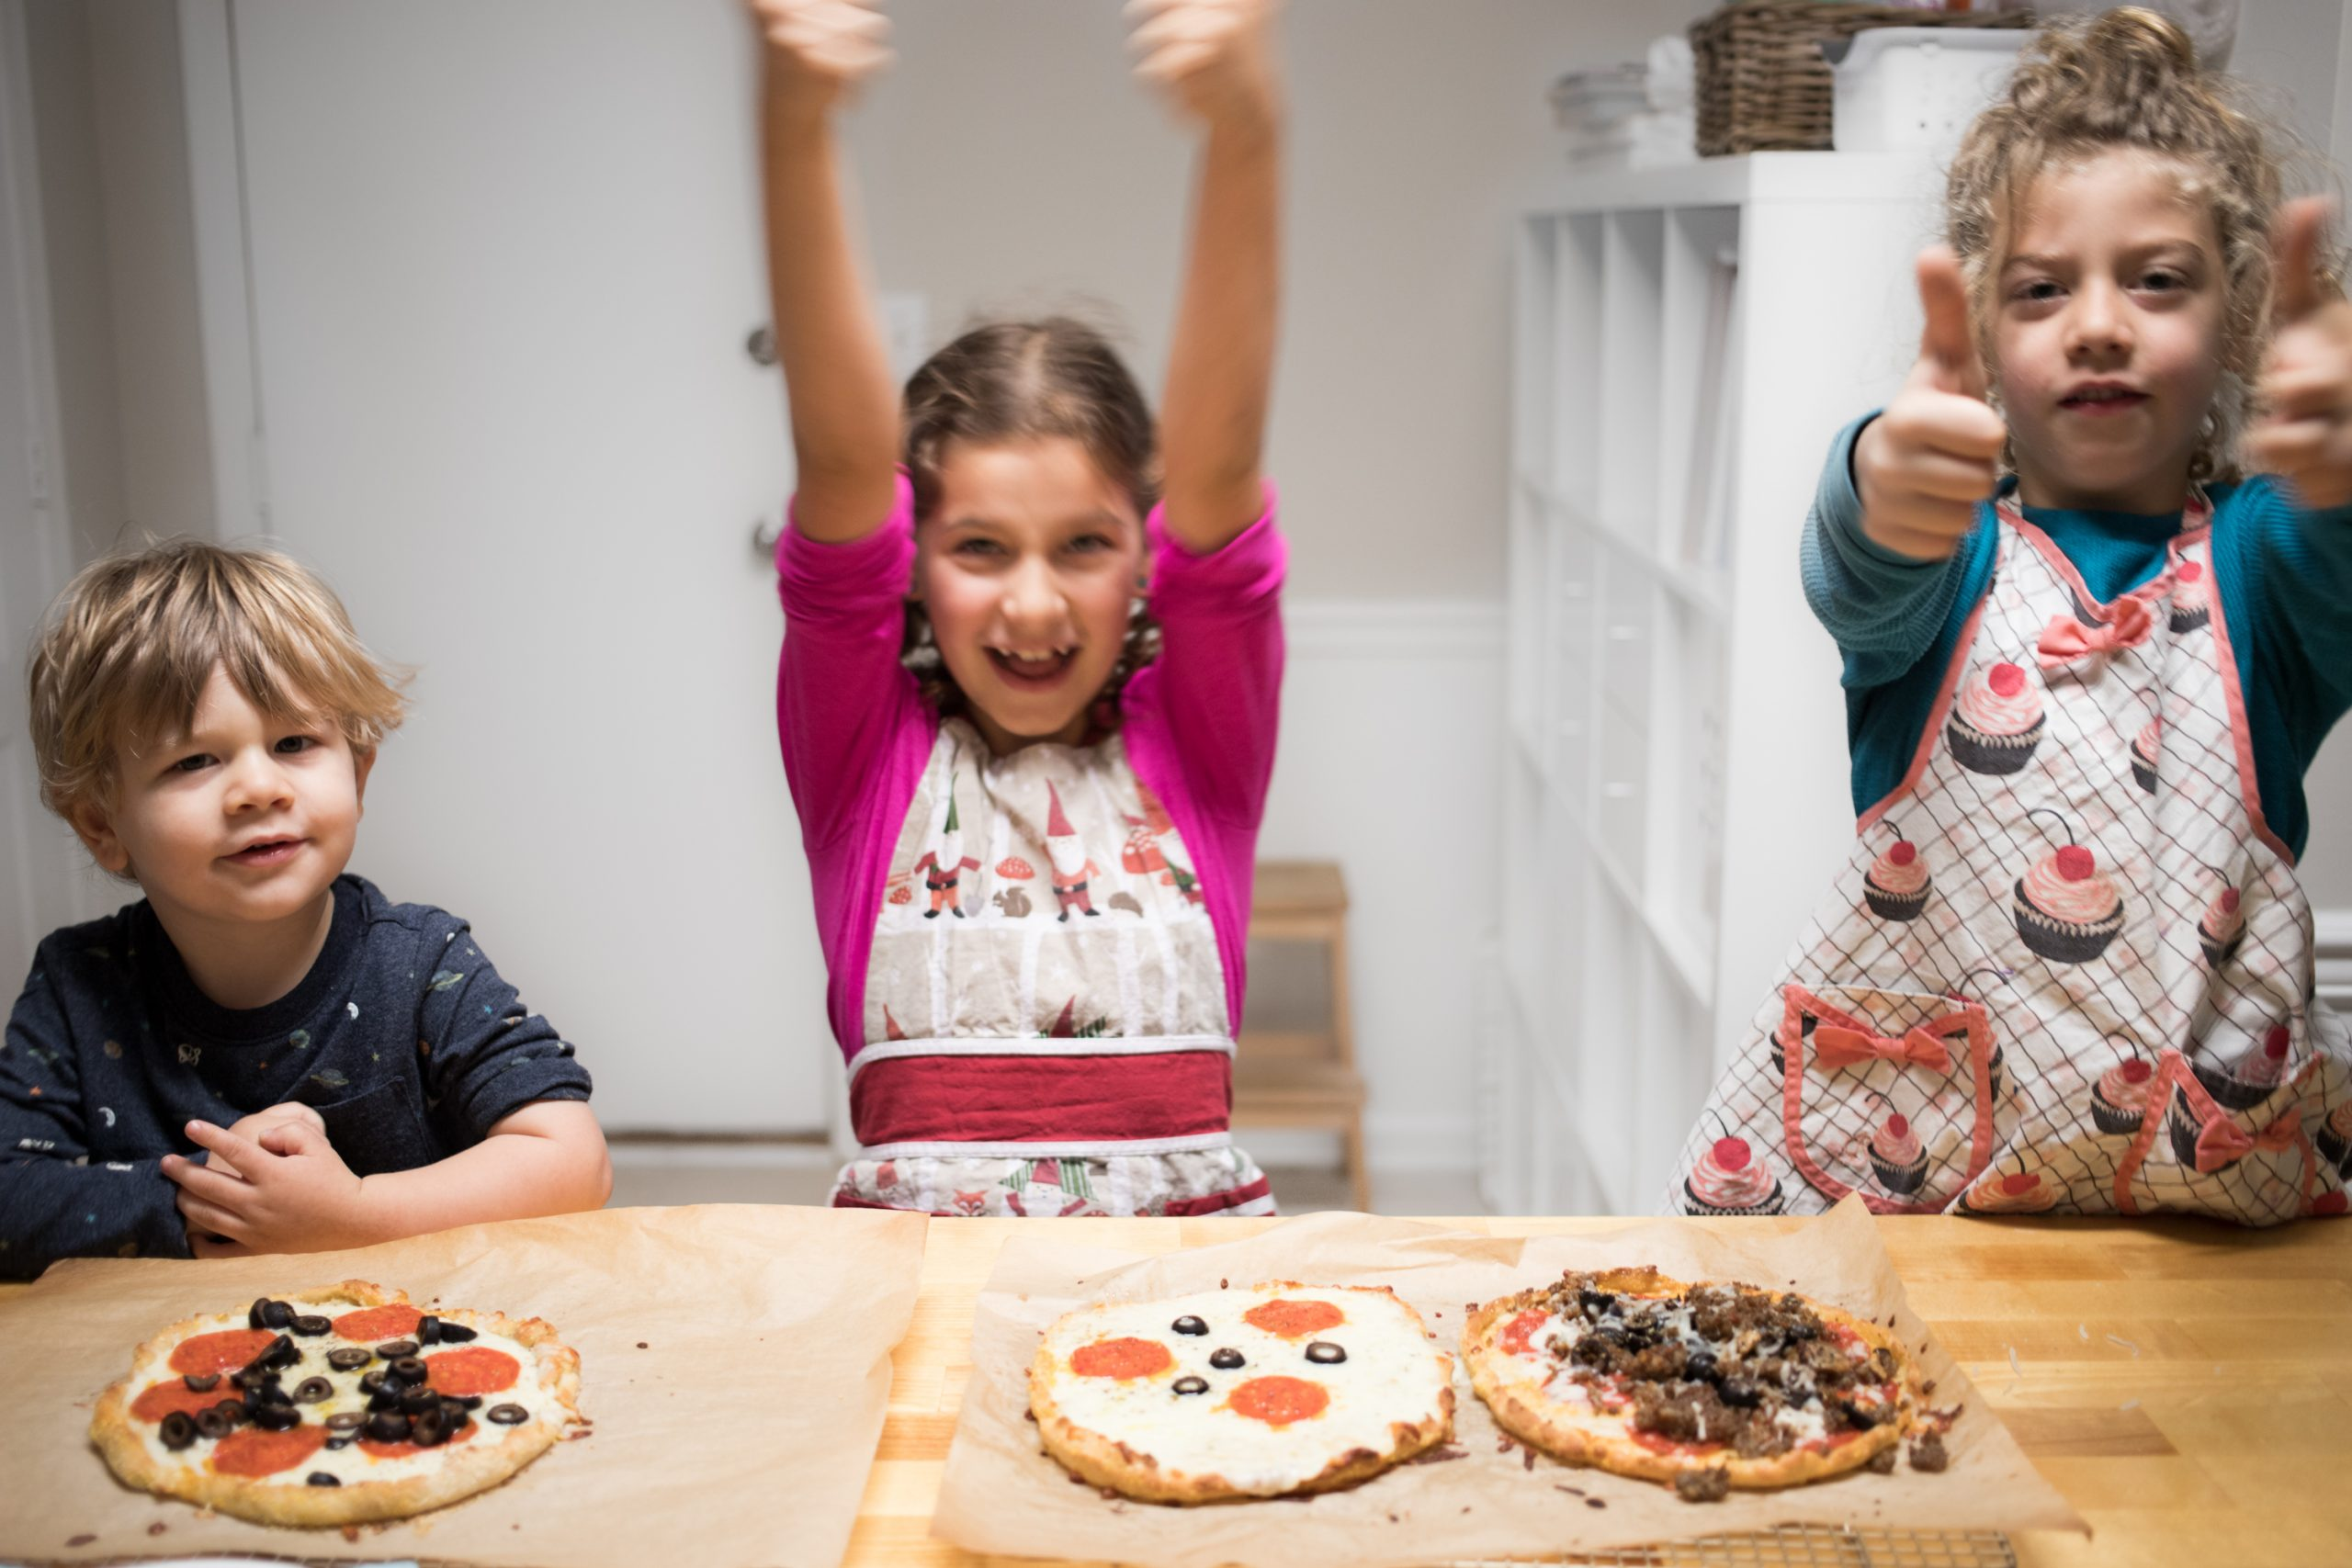 three children smile, sitting at a butcher block kitchen counter, with make-your-own-pizzas in front of them